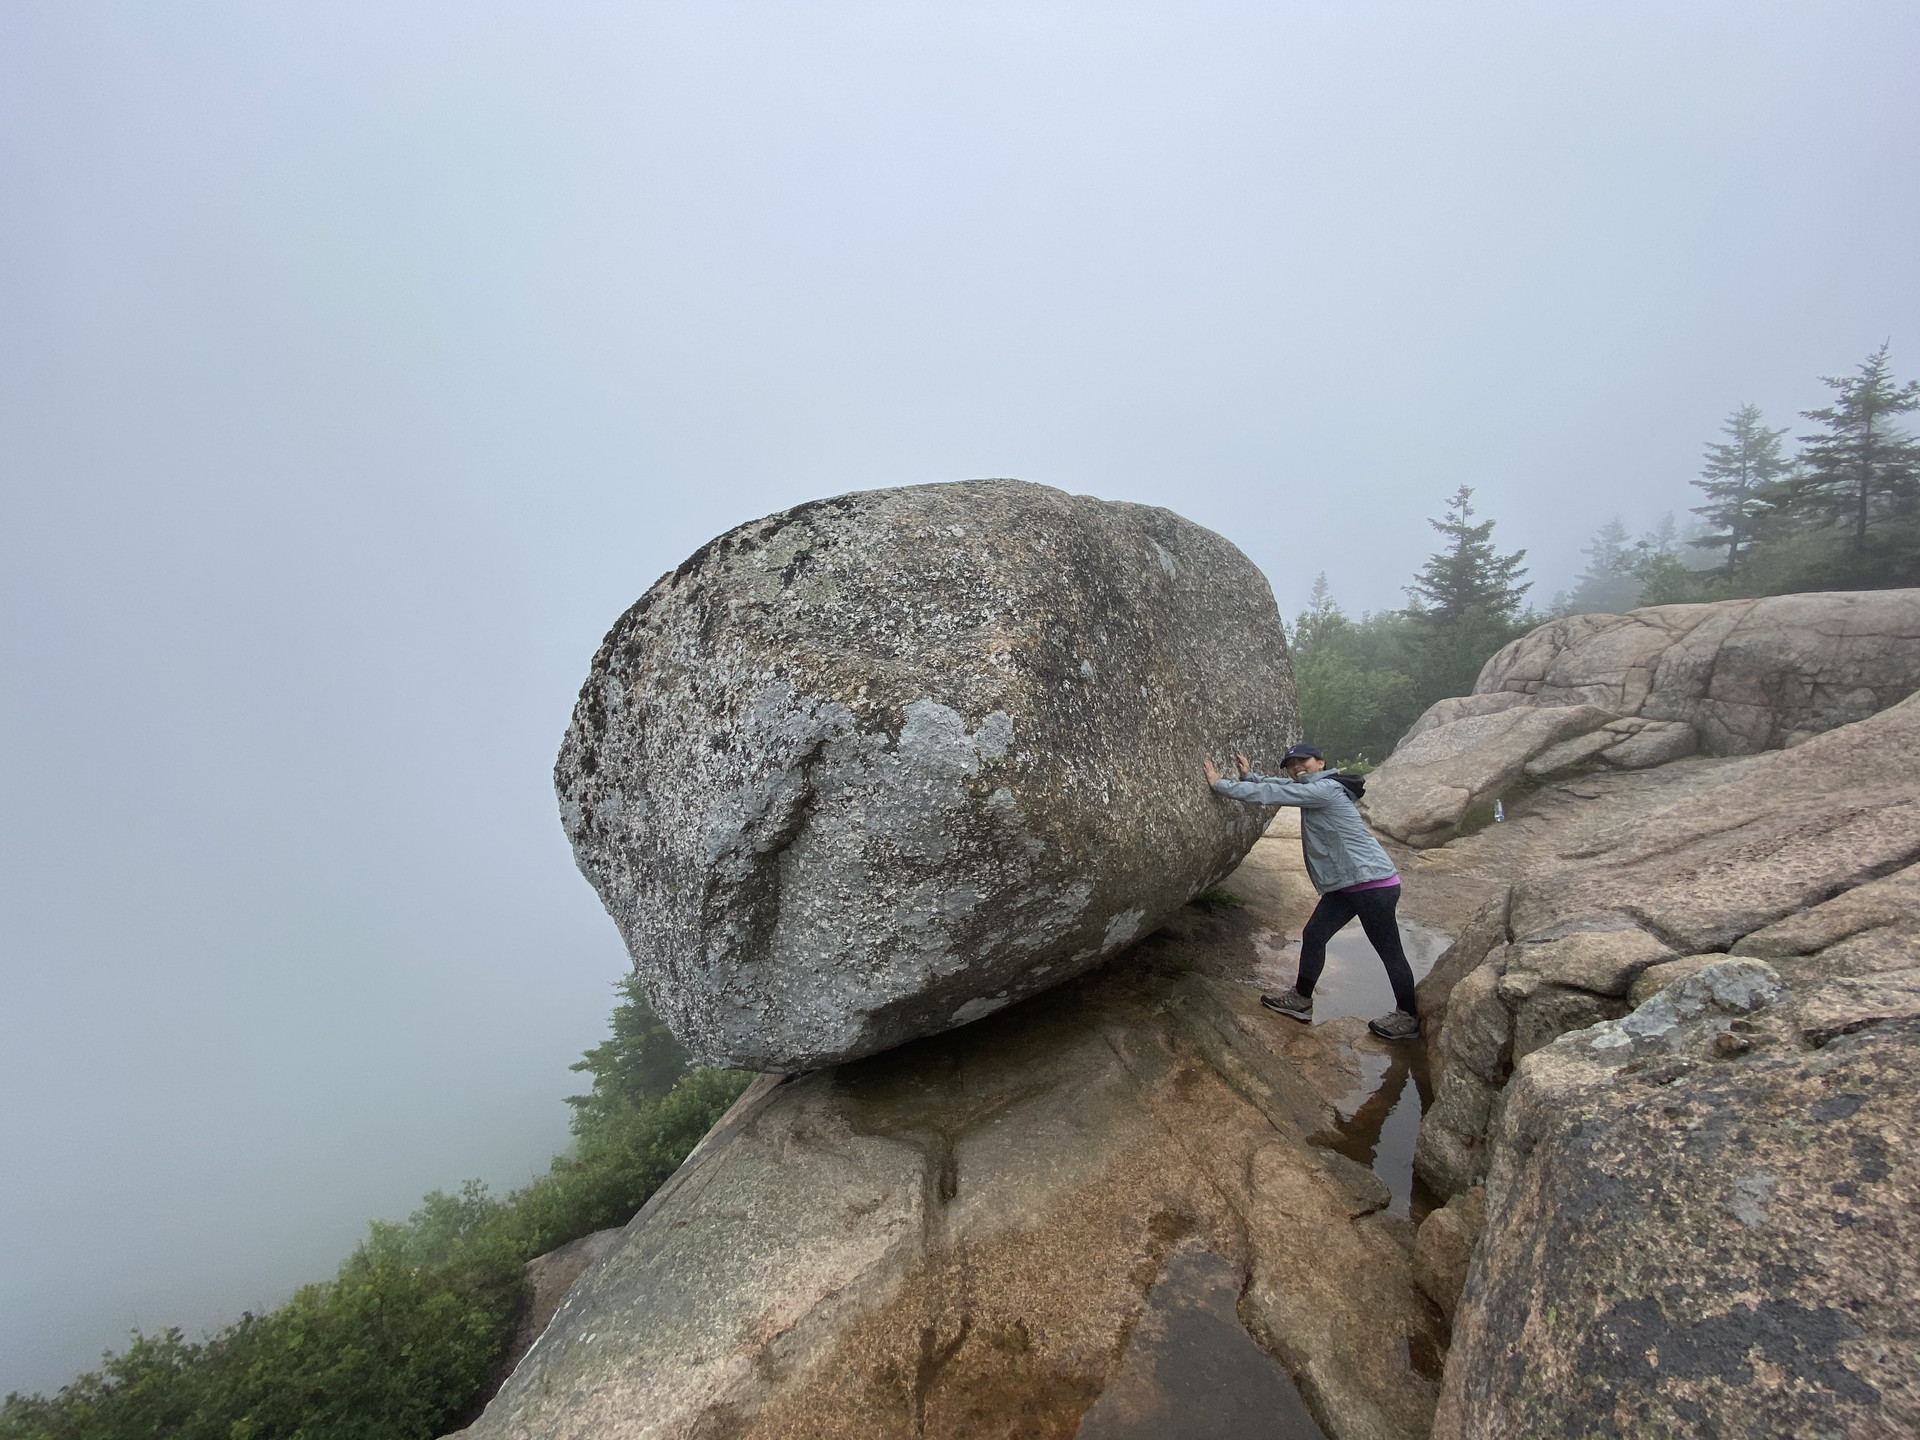 The South Bubble Rock at Acadia National Park by Biteinerary